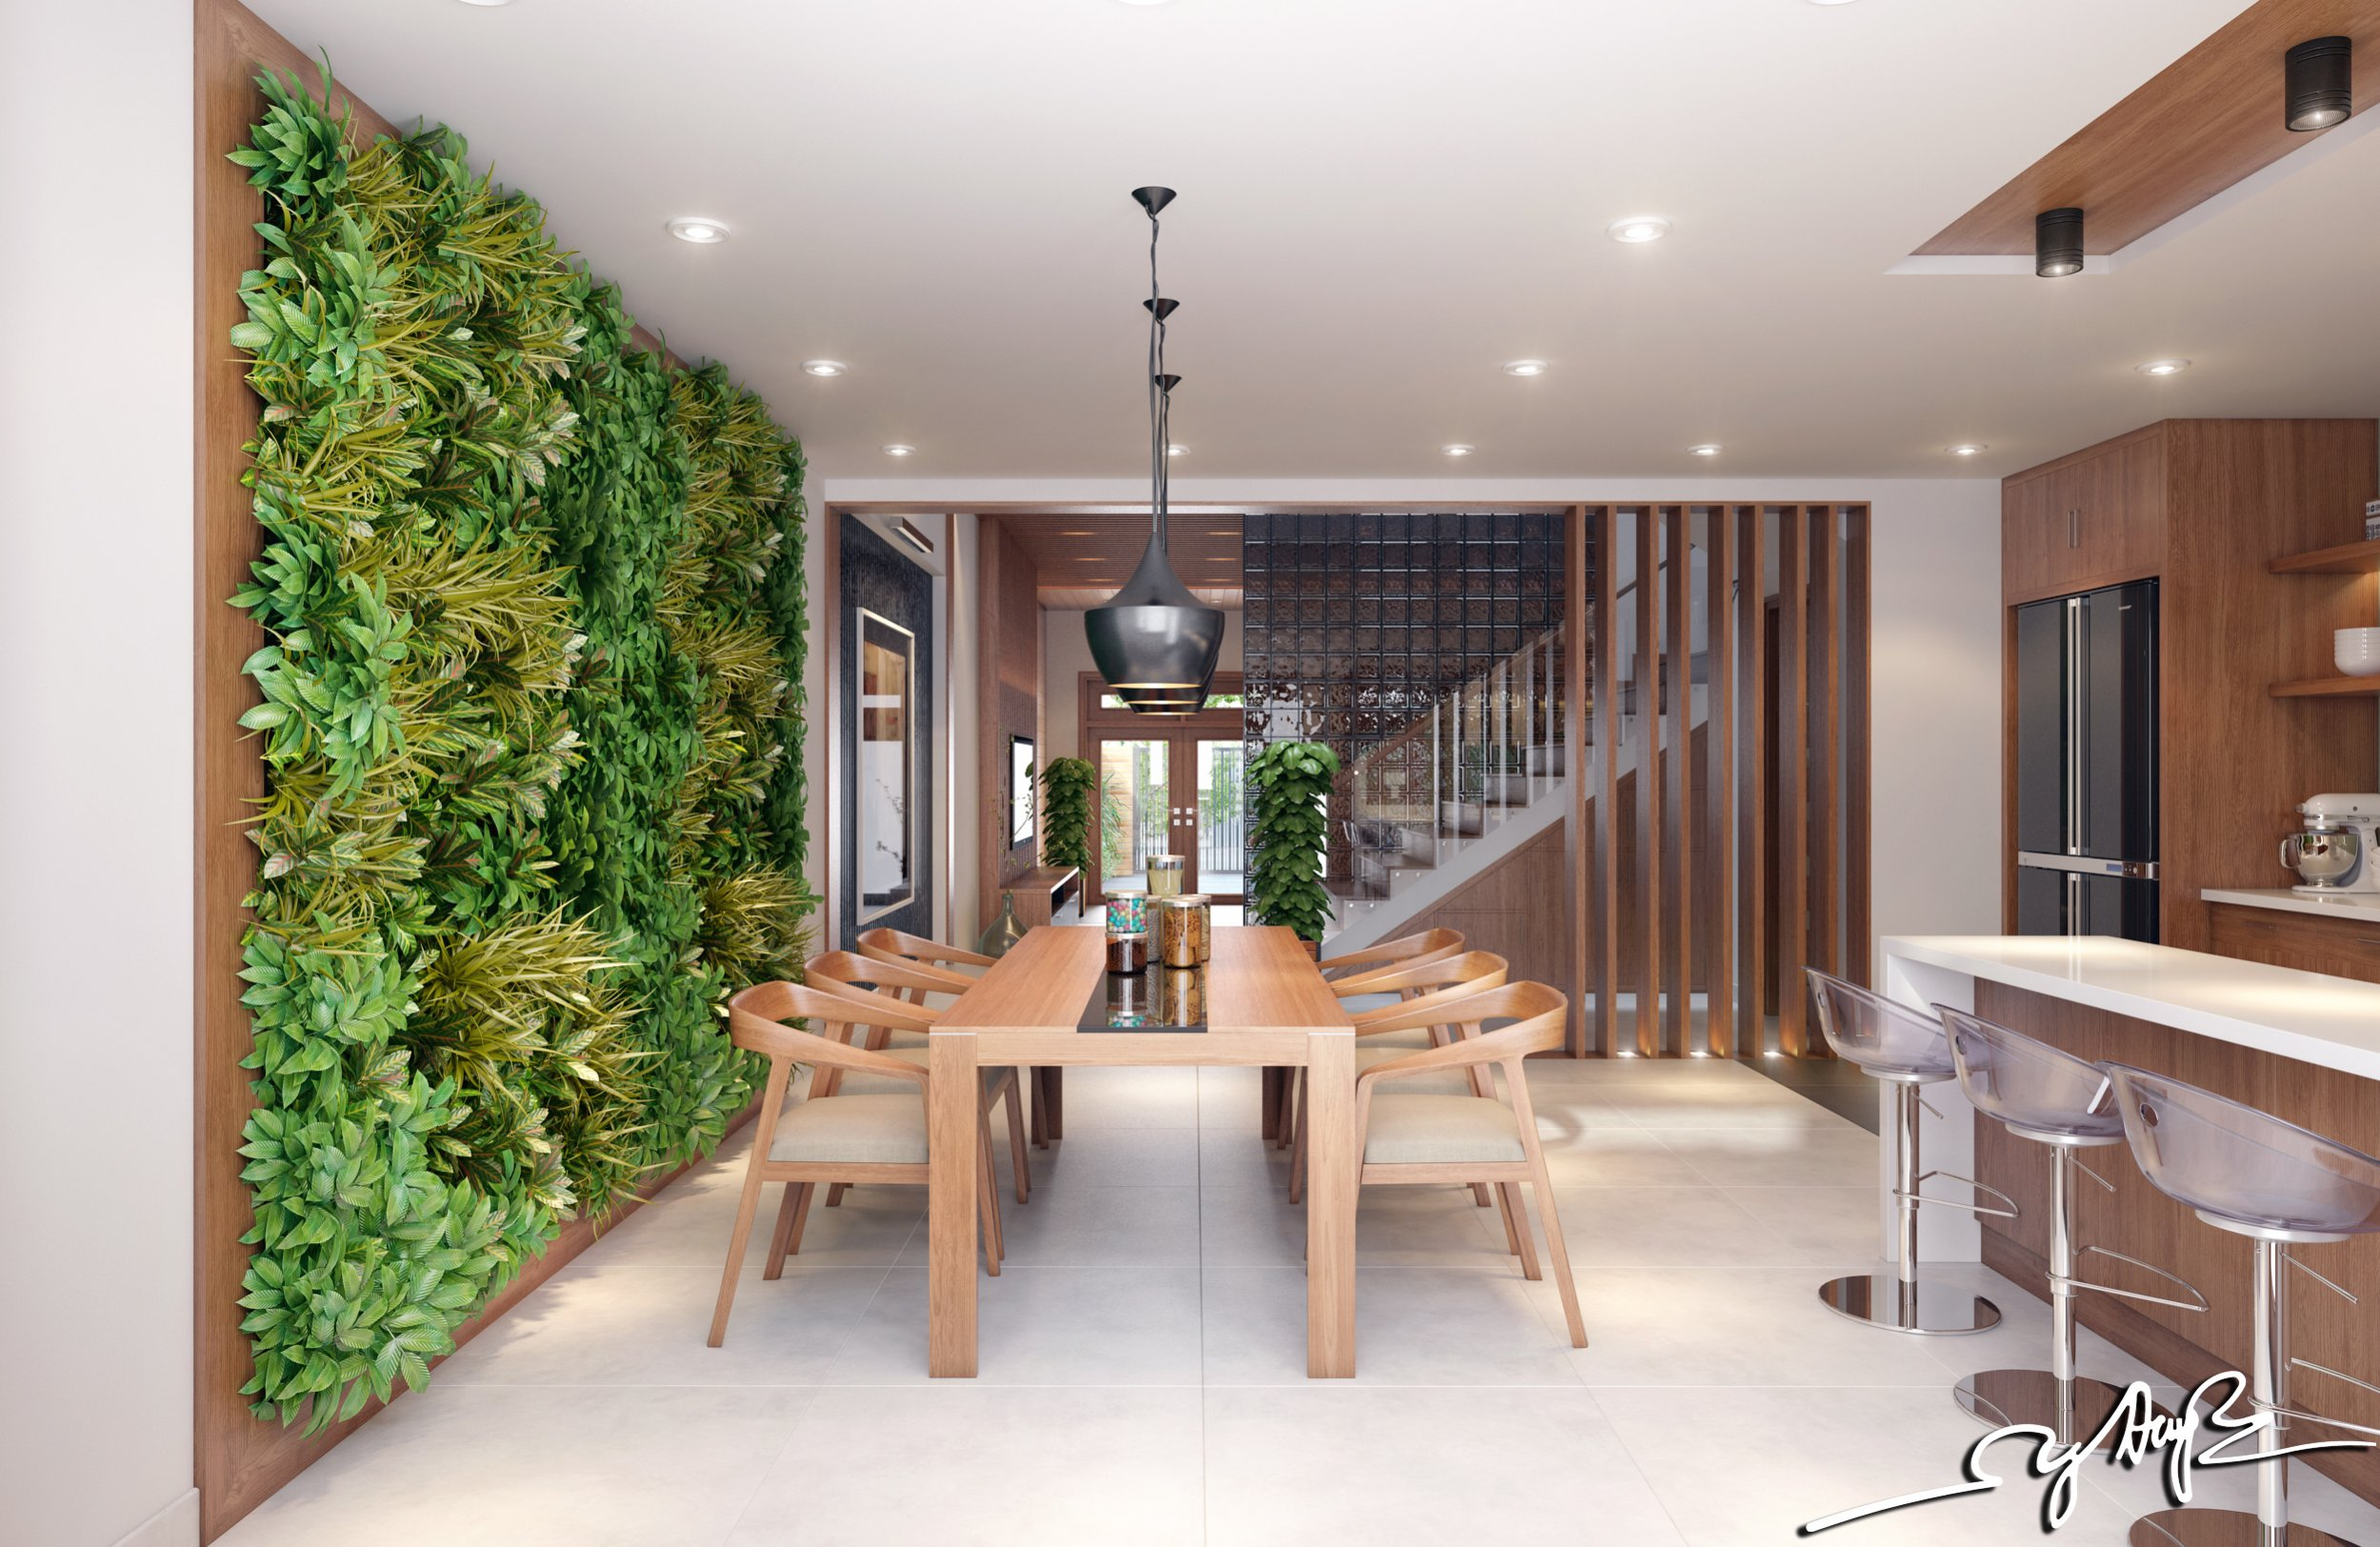 Indoor Kitchen Gardens Interior Design Close To Nature Rich Wood Themes And Indoor